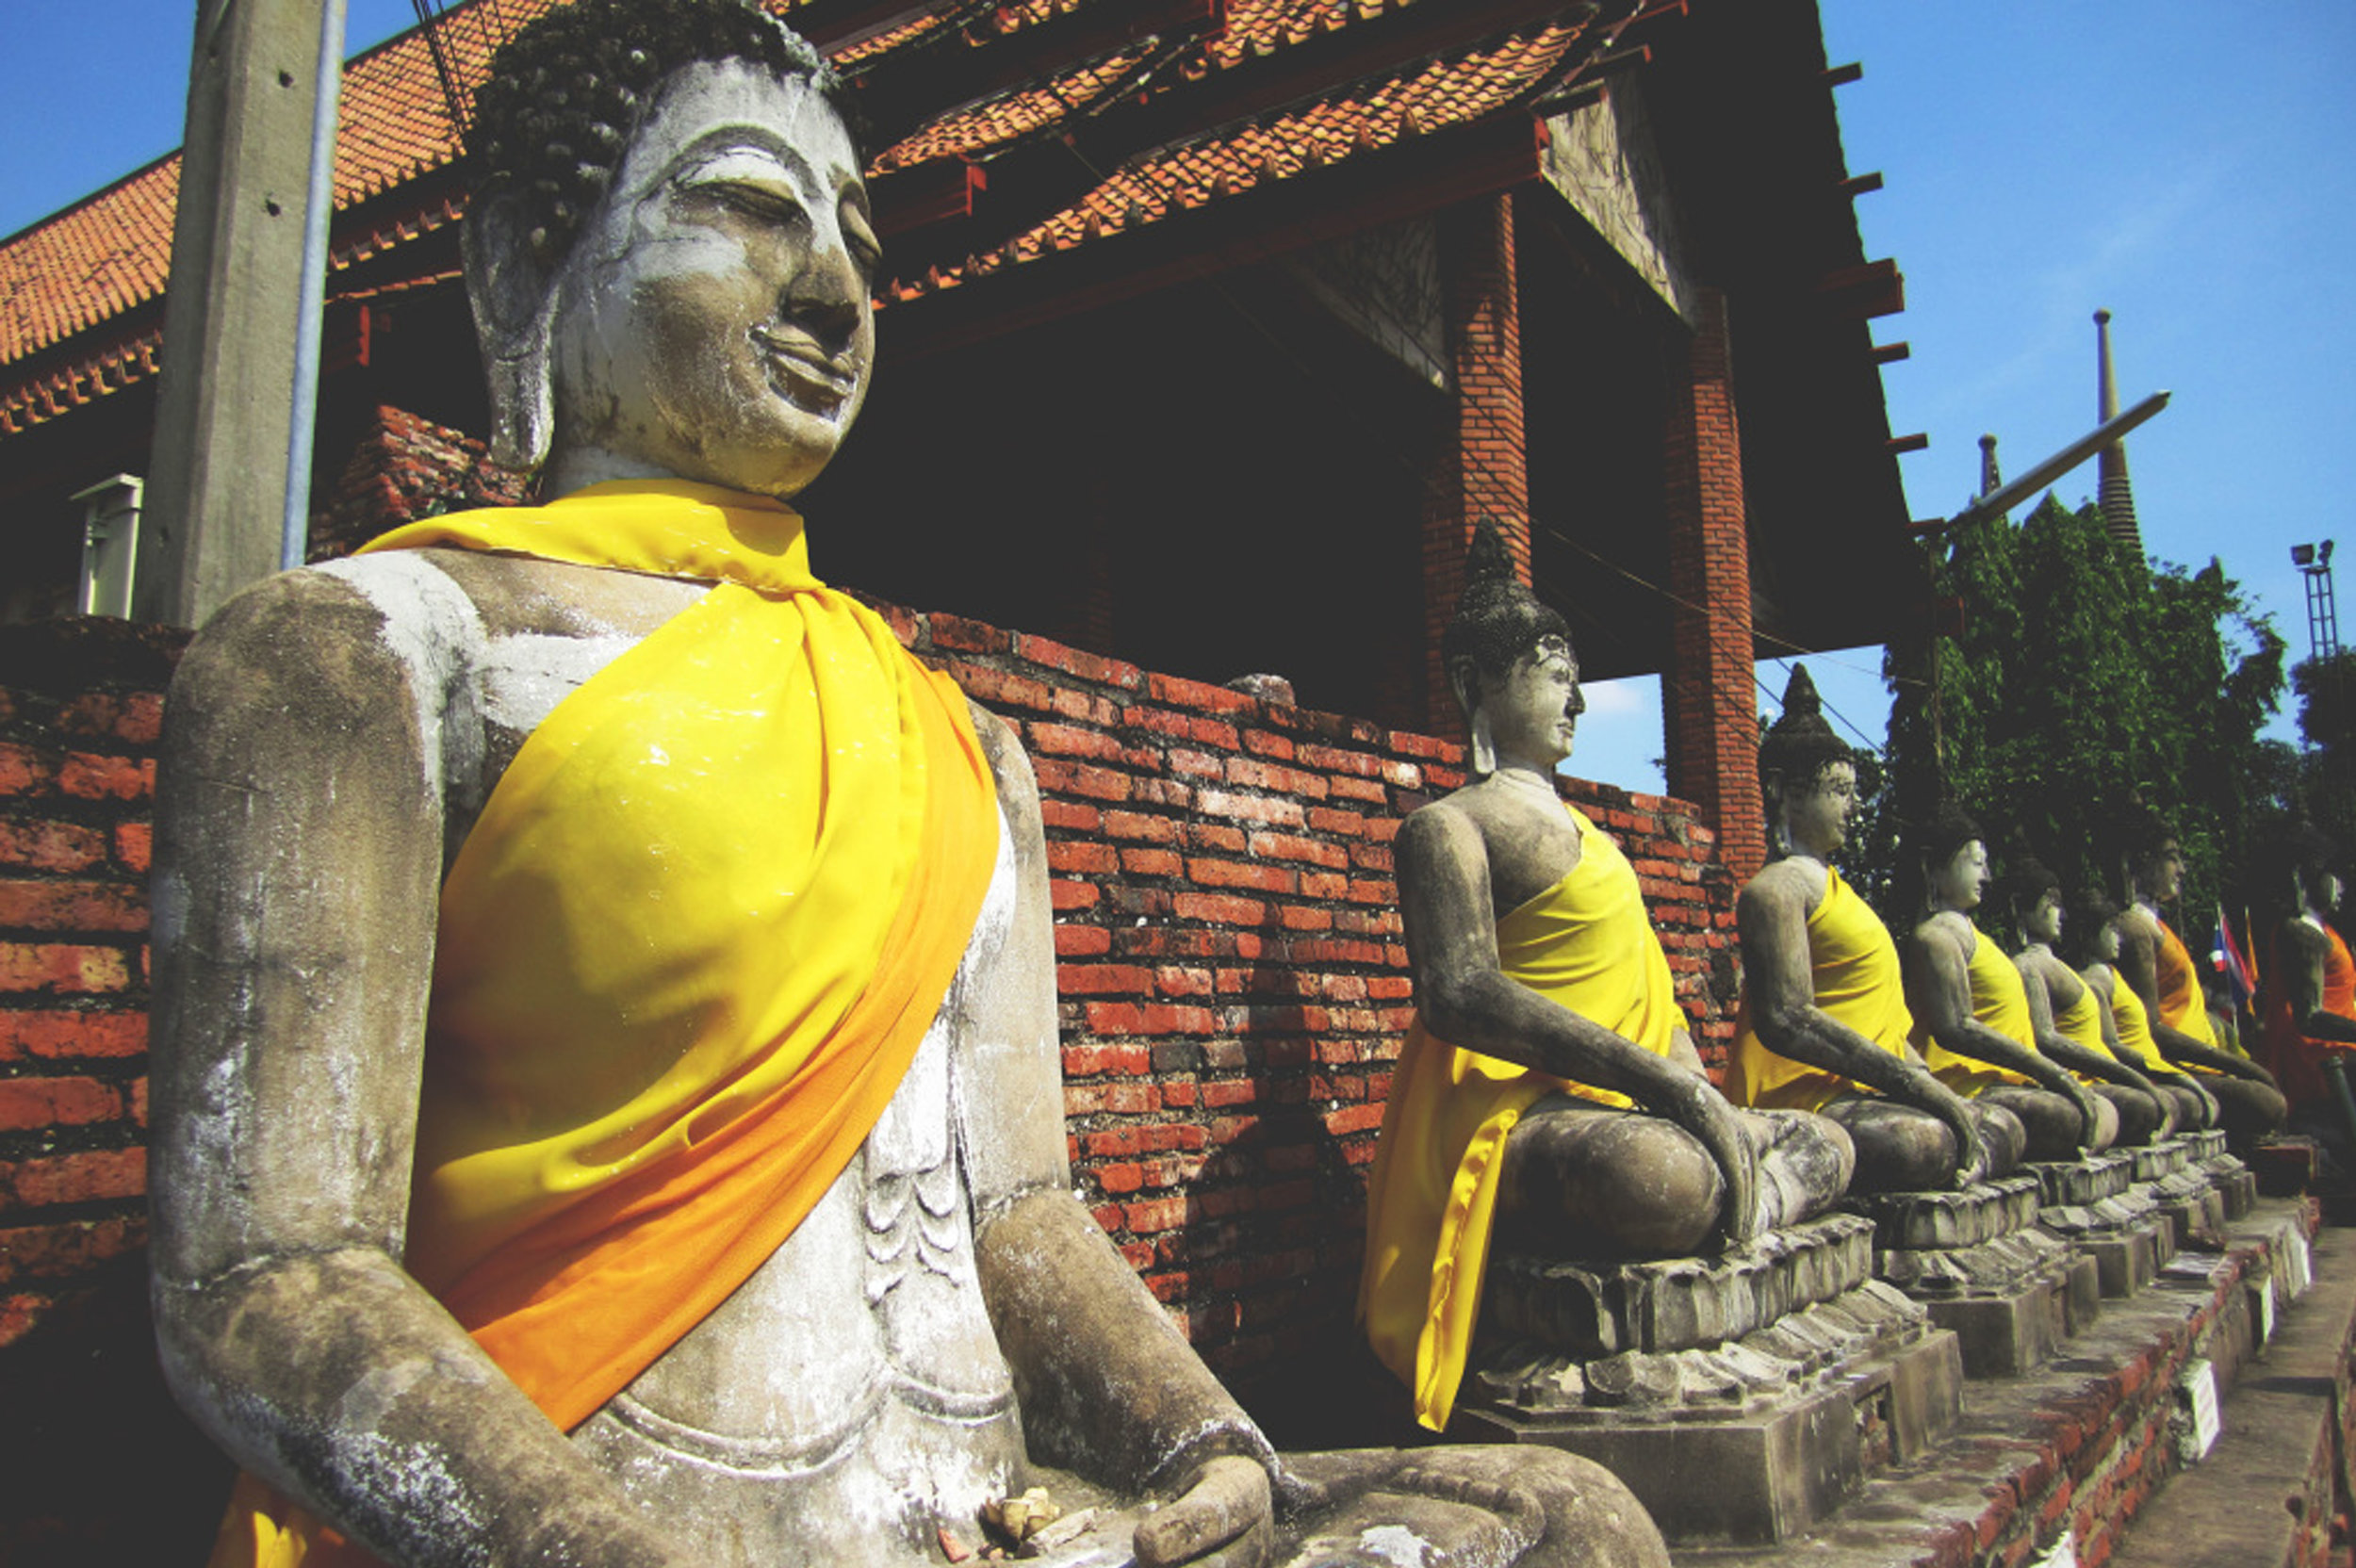 Row of stone buddhas at a temple in Thailand